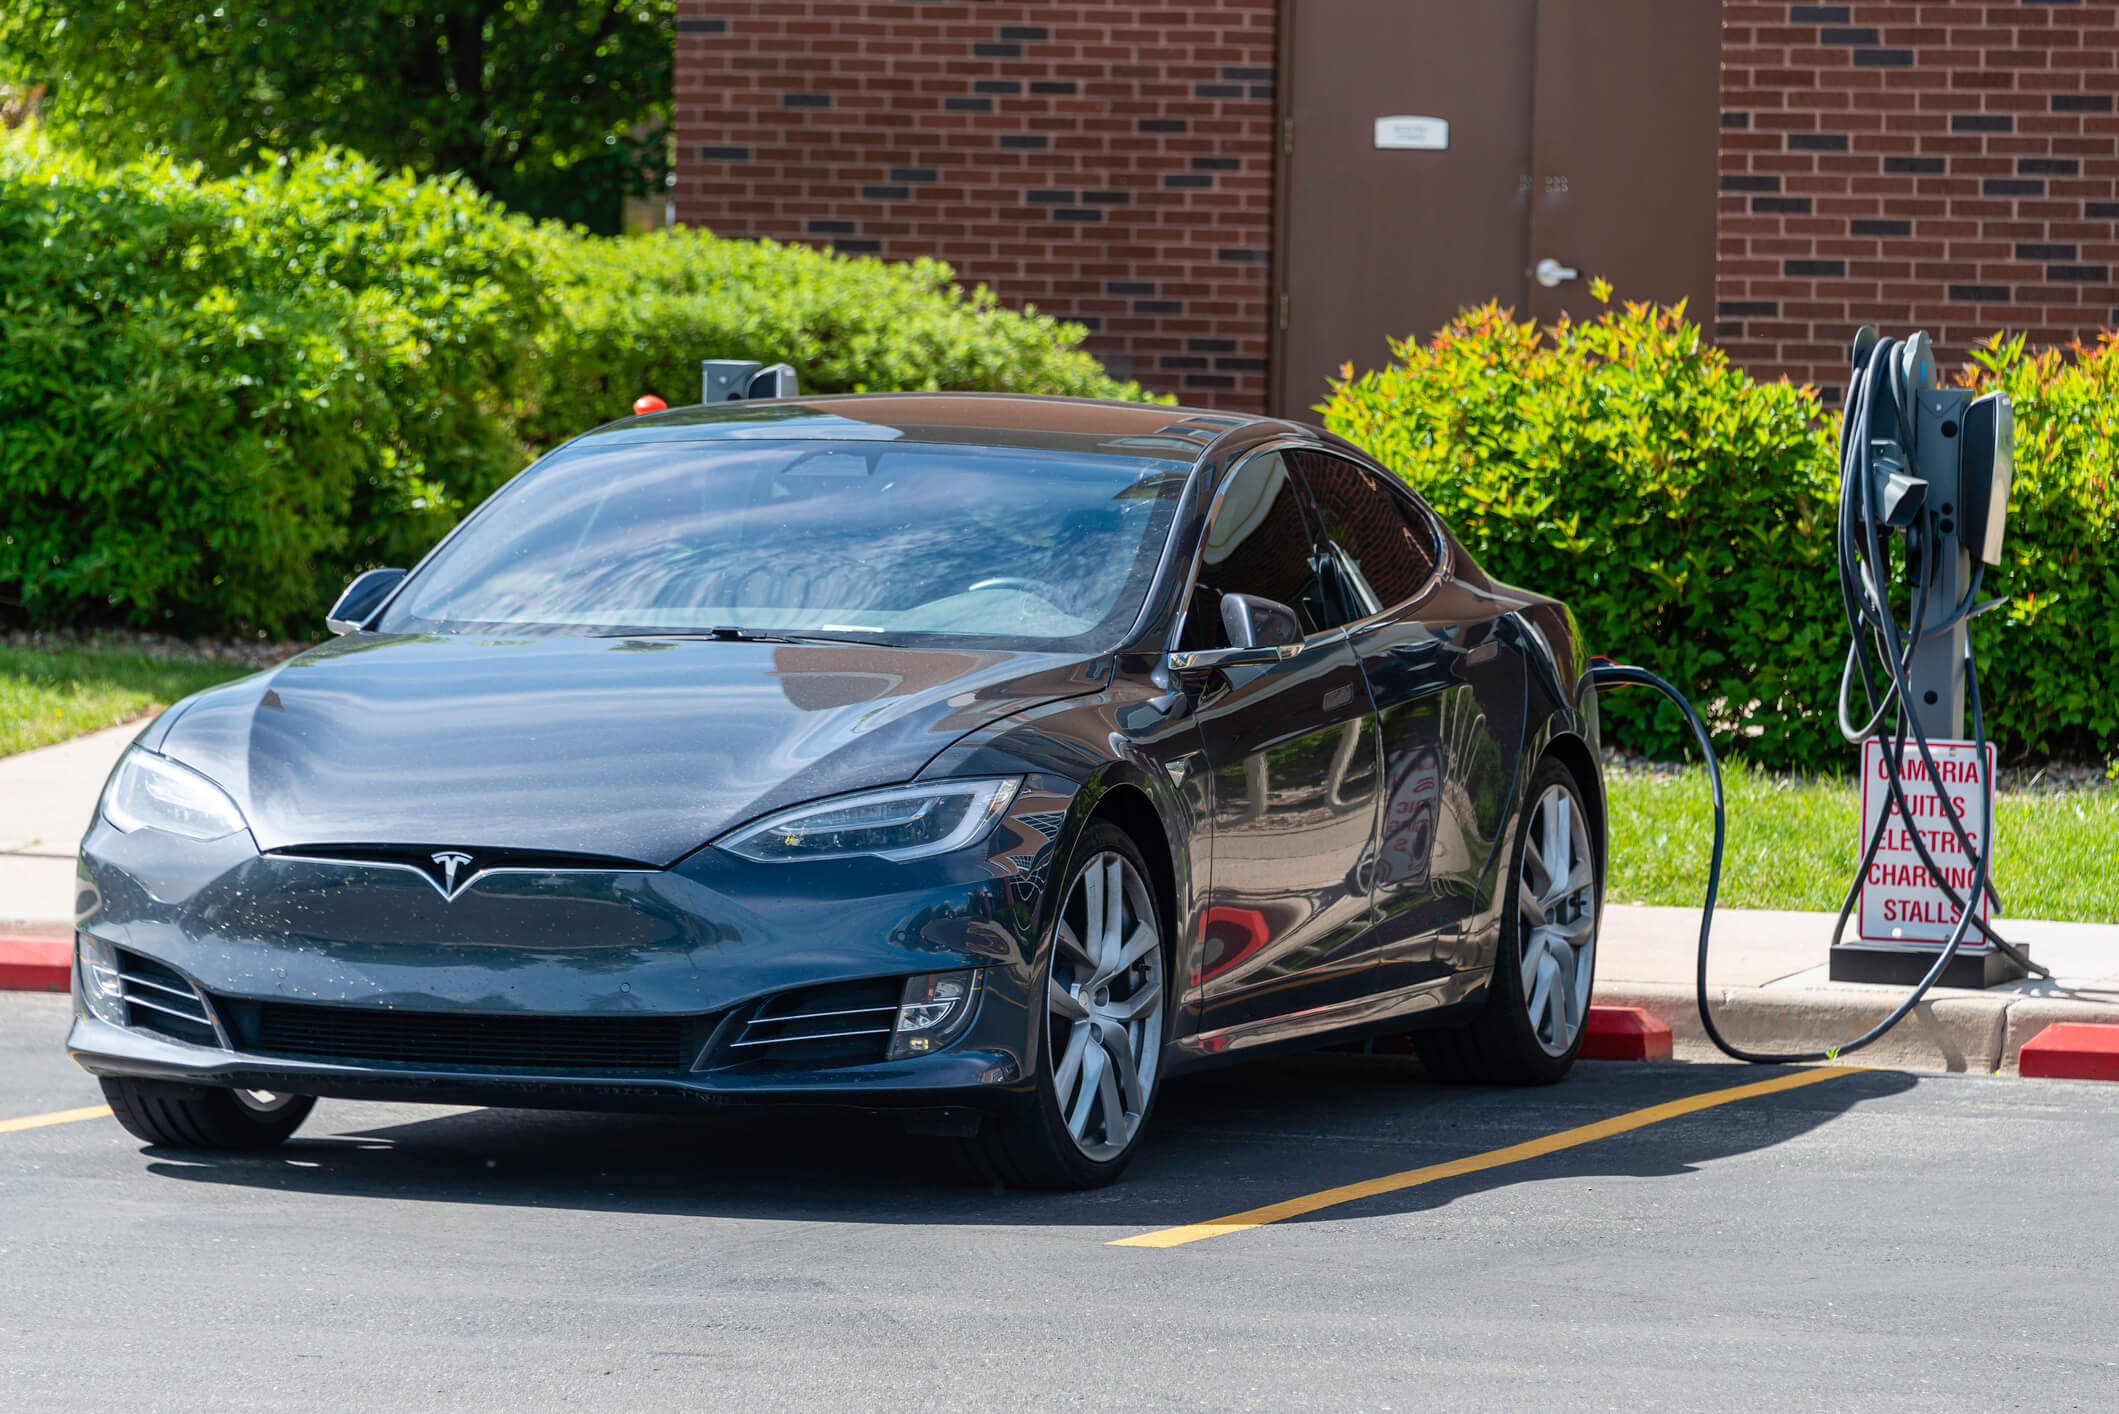 TheLemonFirm.com discusses the different kinds of defects that are often in Tesla Motors vehicles.